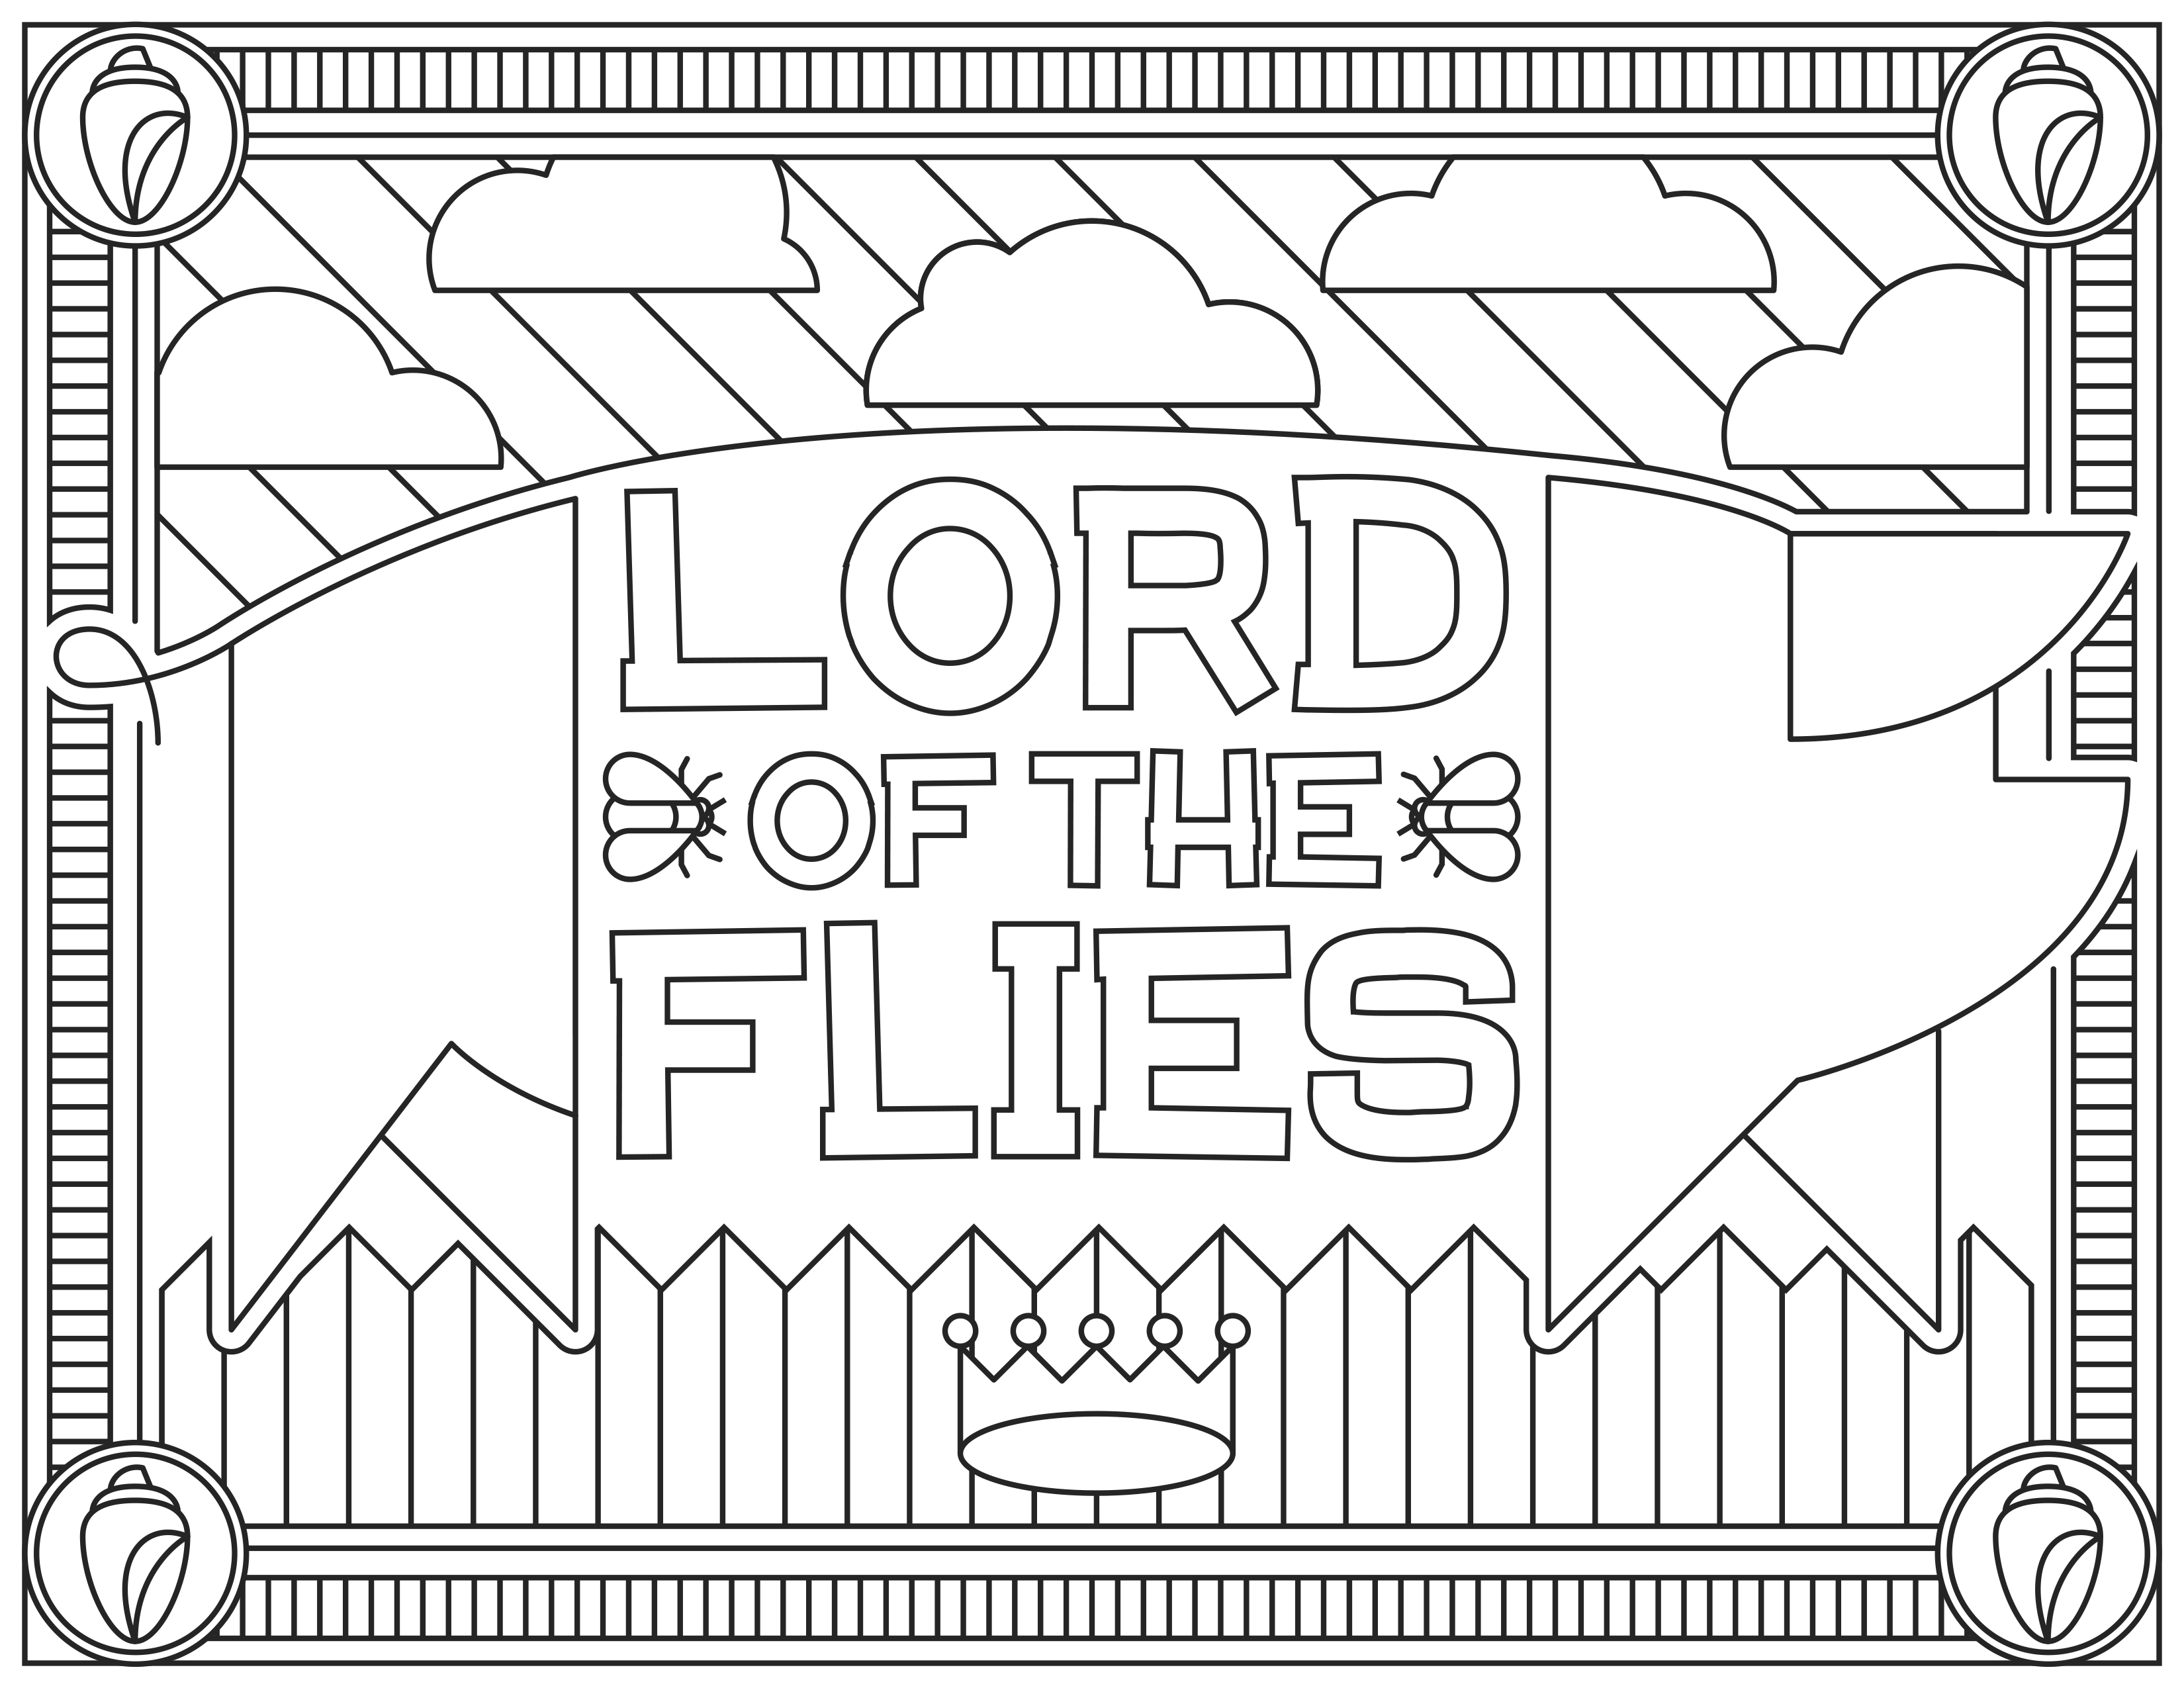 Lord of the Flies - Movies Adult Coloring Pages